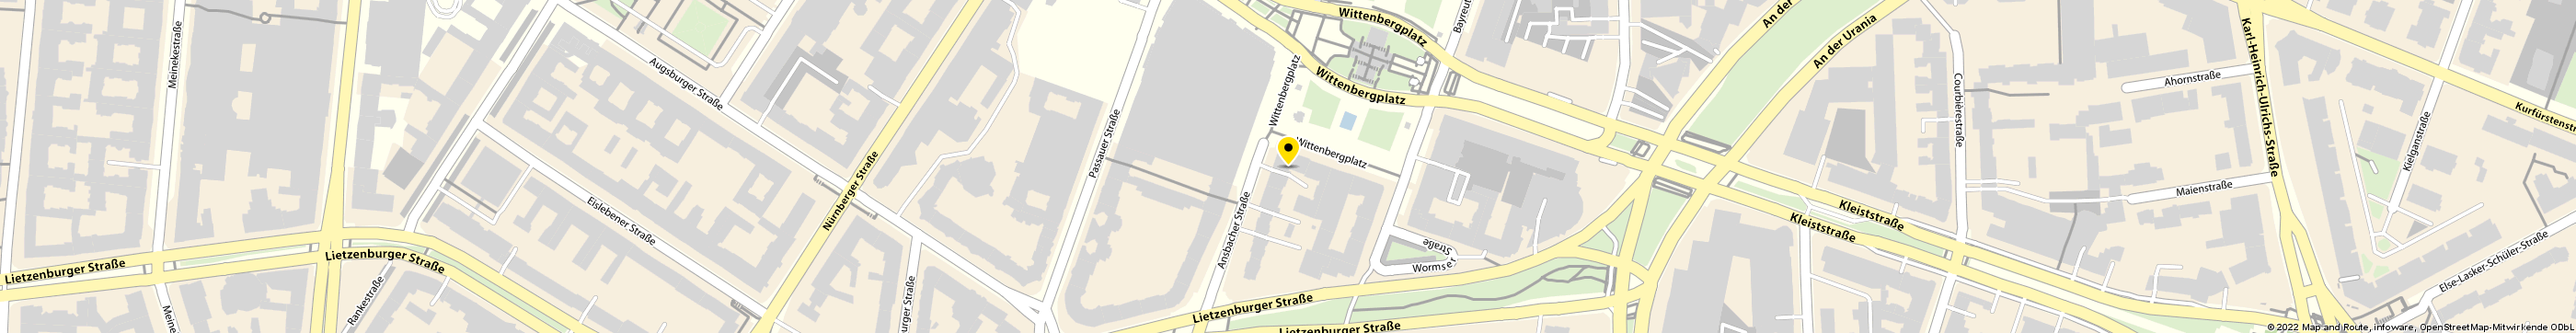 TIBA Software Center GmbH Systemhaus in Berlin-Schöneberg Karte